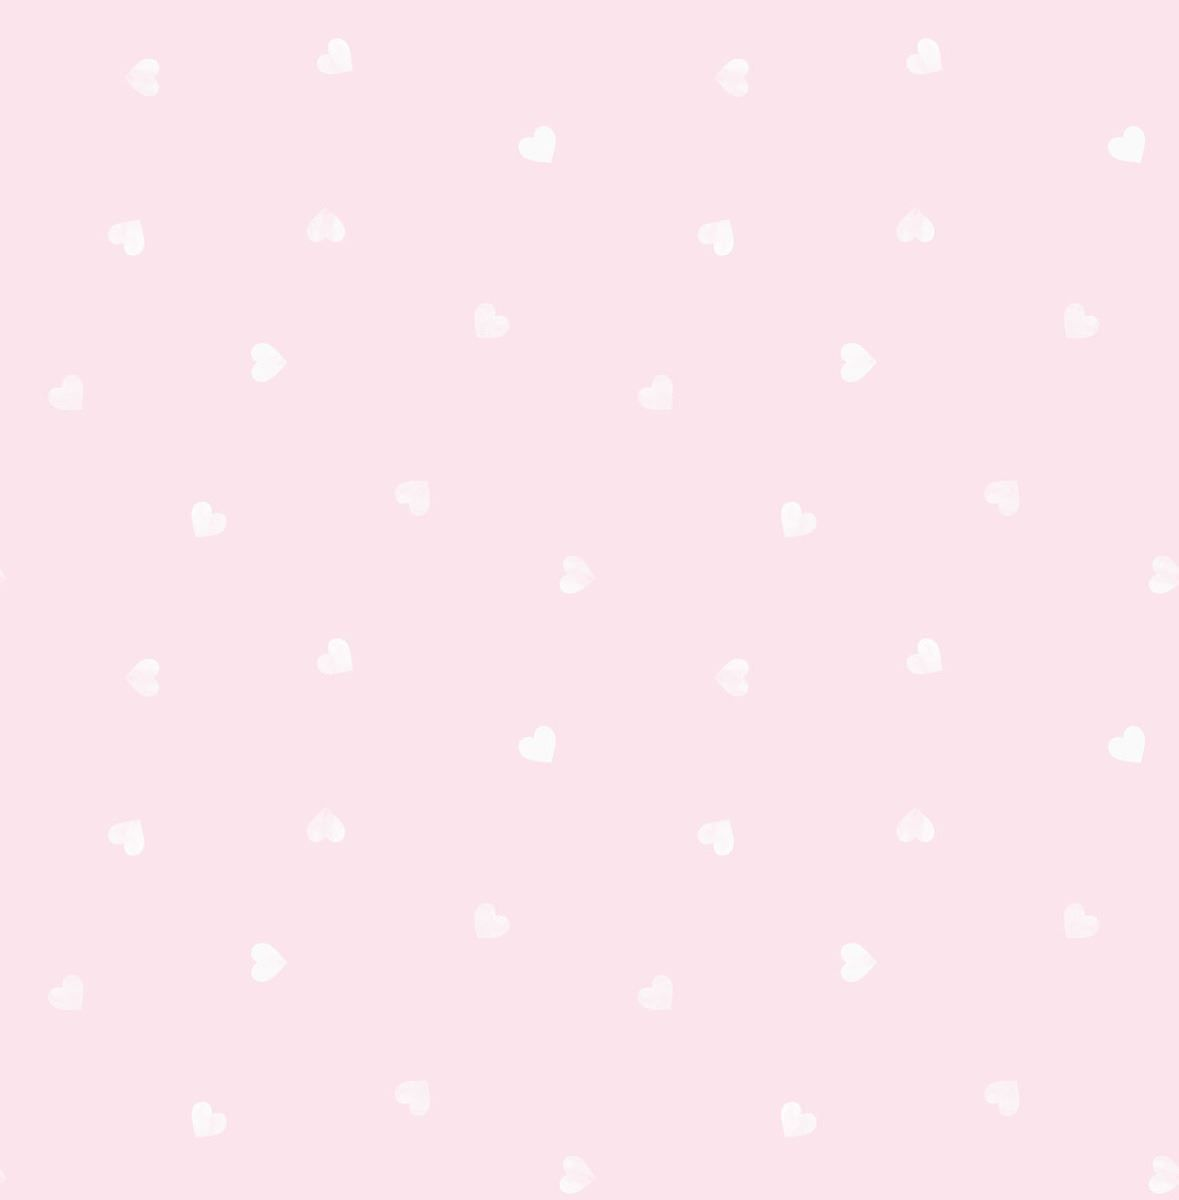 Pastel Hearts Wallpapers Top Free Pastel Hearts Backgrounds Wallpaperaccess